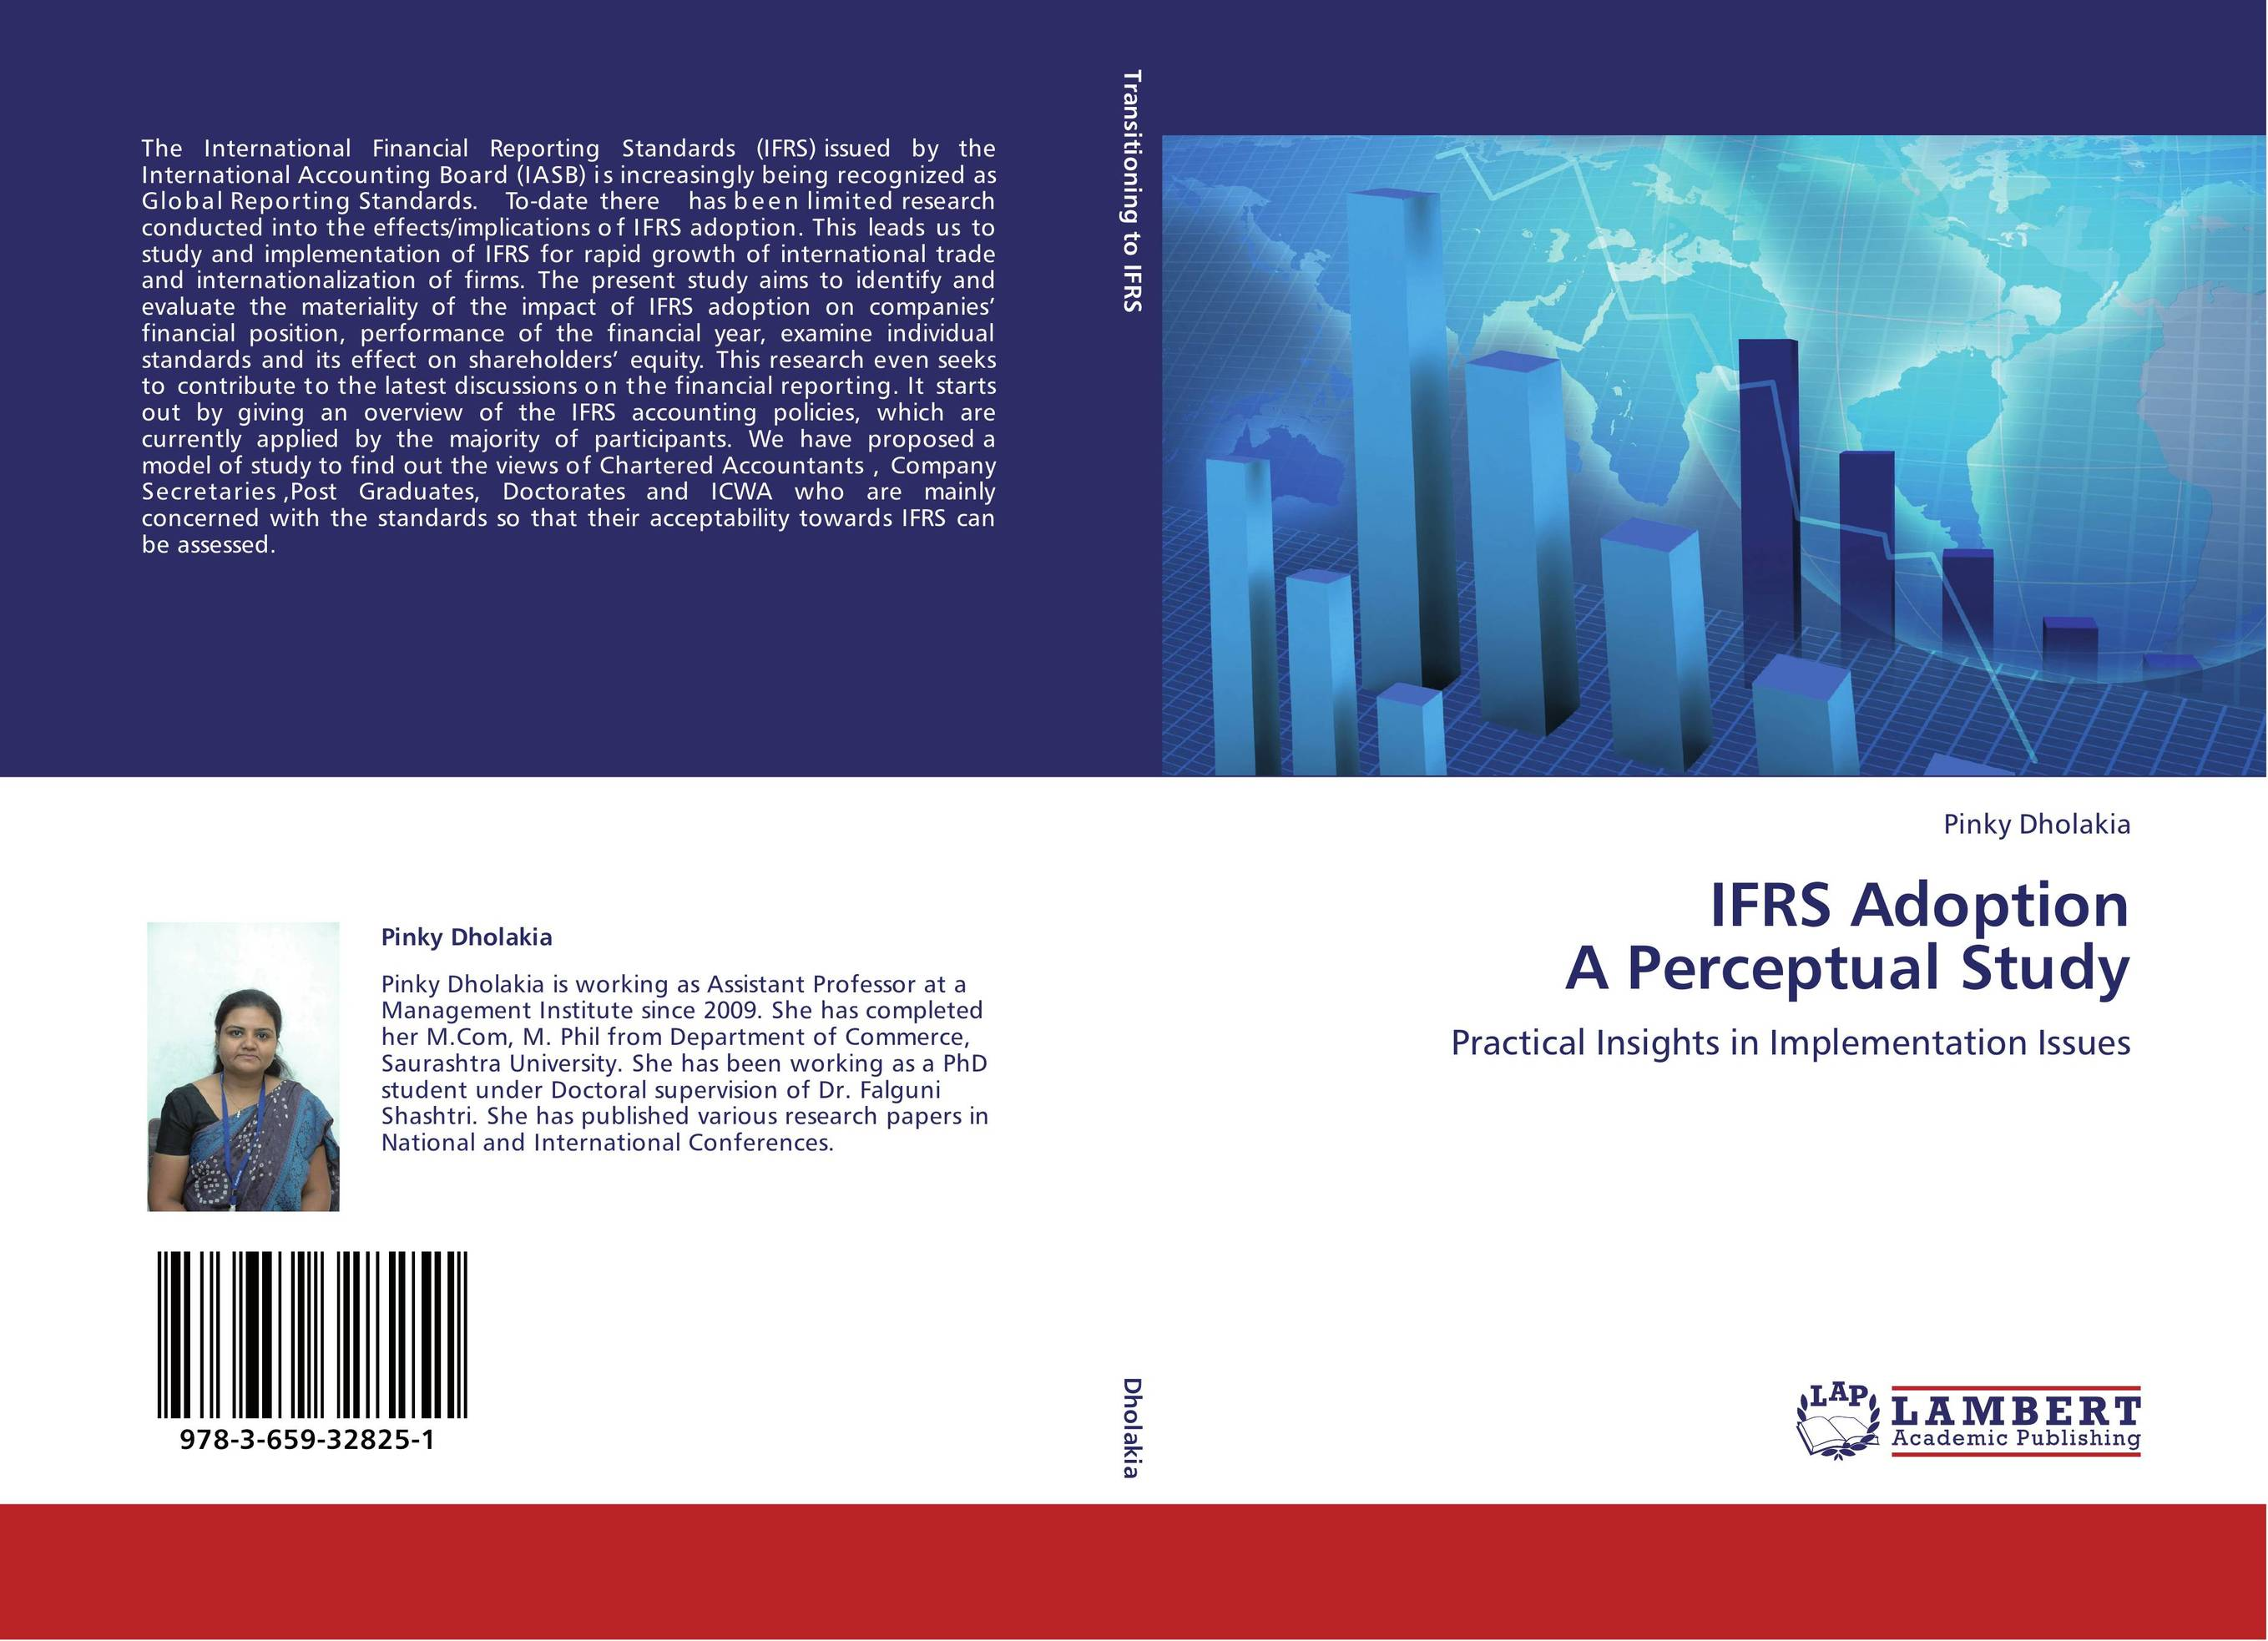 effect of ifrs adoption The effects of mandatory ifrs adoption in the eu: a review of empirical research reviews academic research into the effects of mandatory adoption of ifrs in the eu and summarises what it tells us about the costs and benefits of adoption.